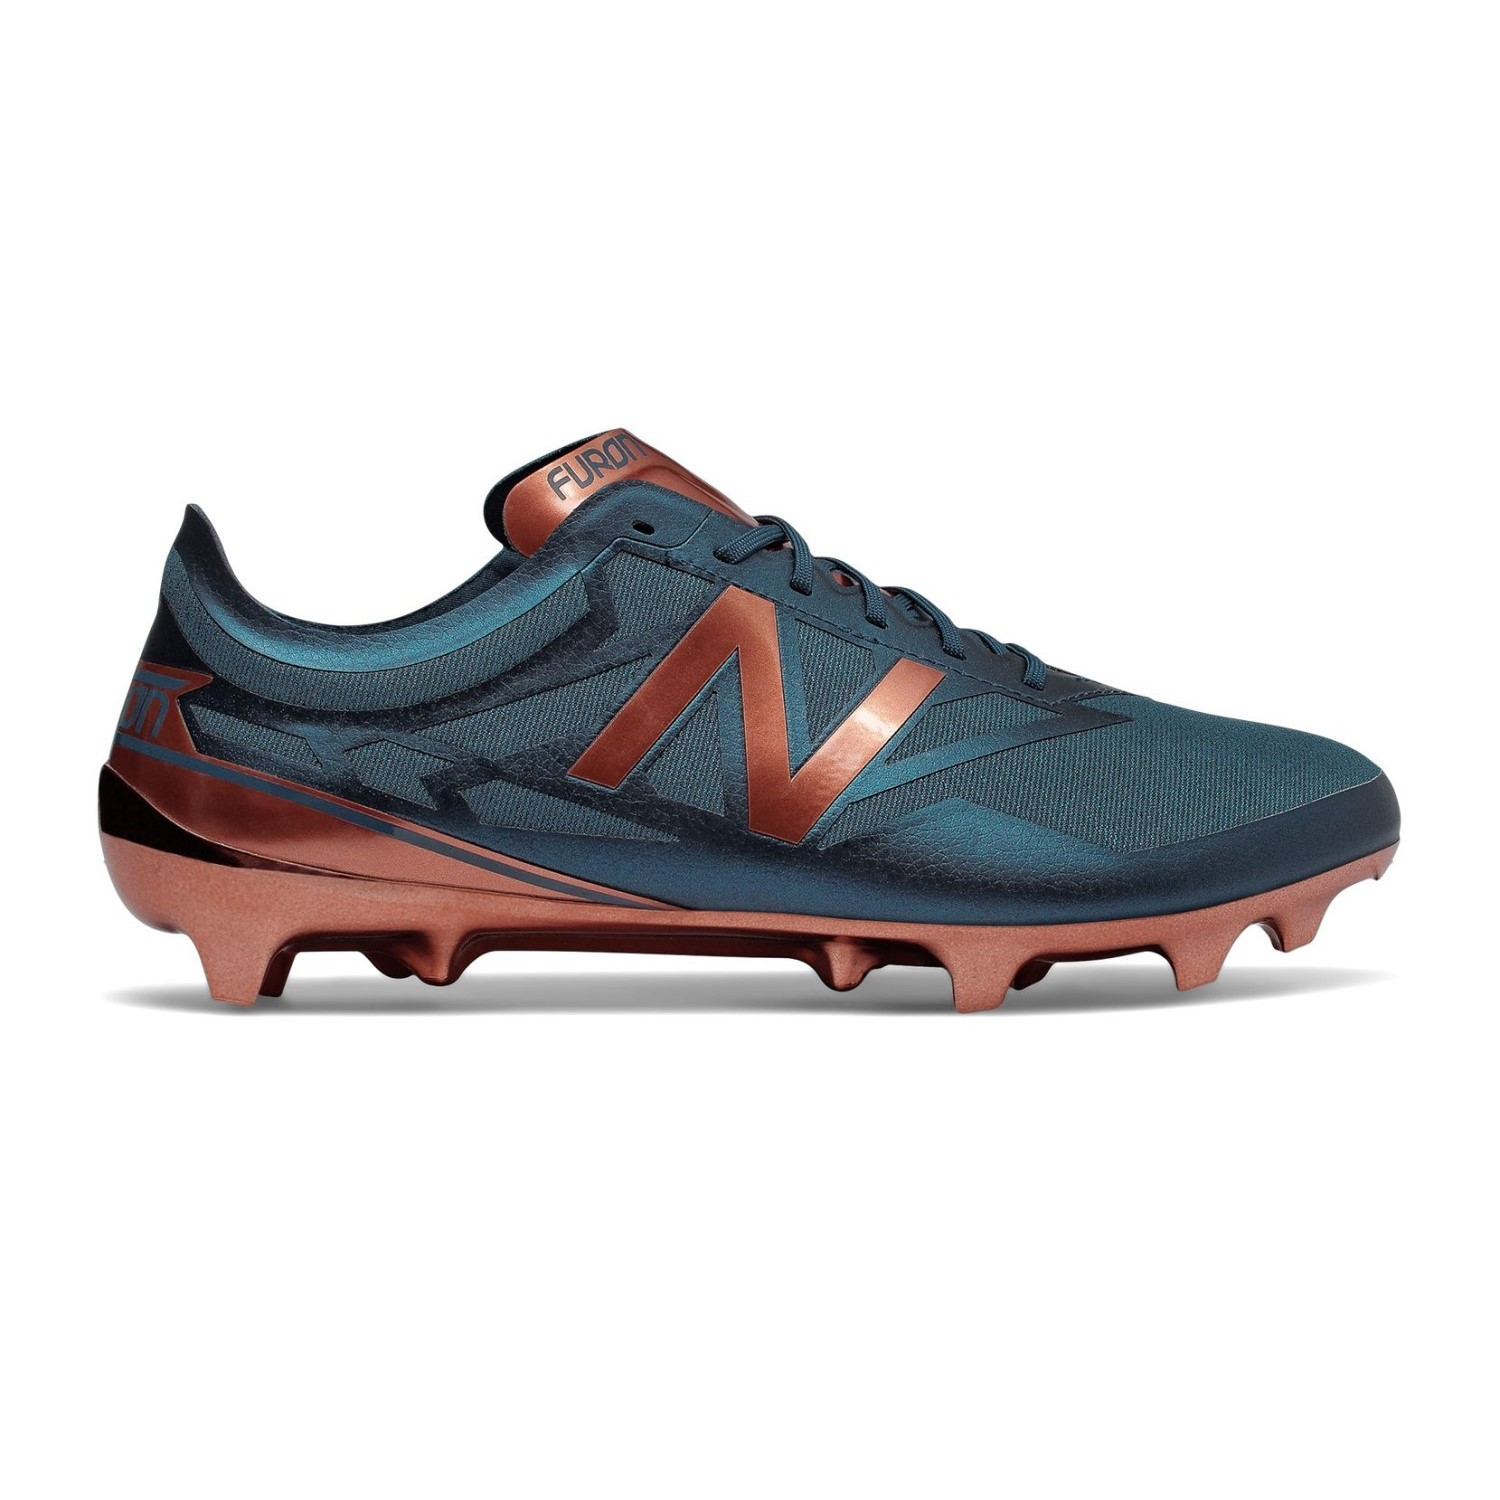 459c63656 New Balance Furon 3.0 Conduction Pack FG - Mens Football Boots - North  Sea/Copper